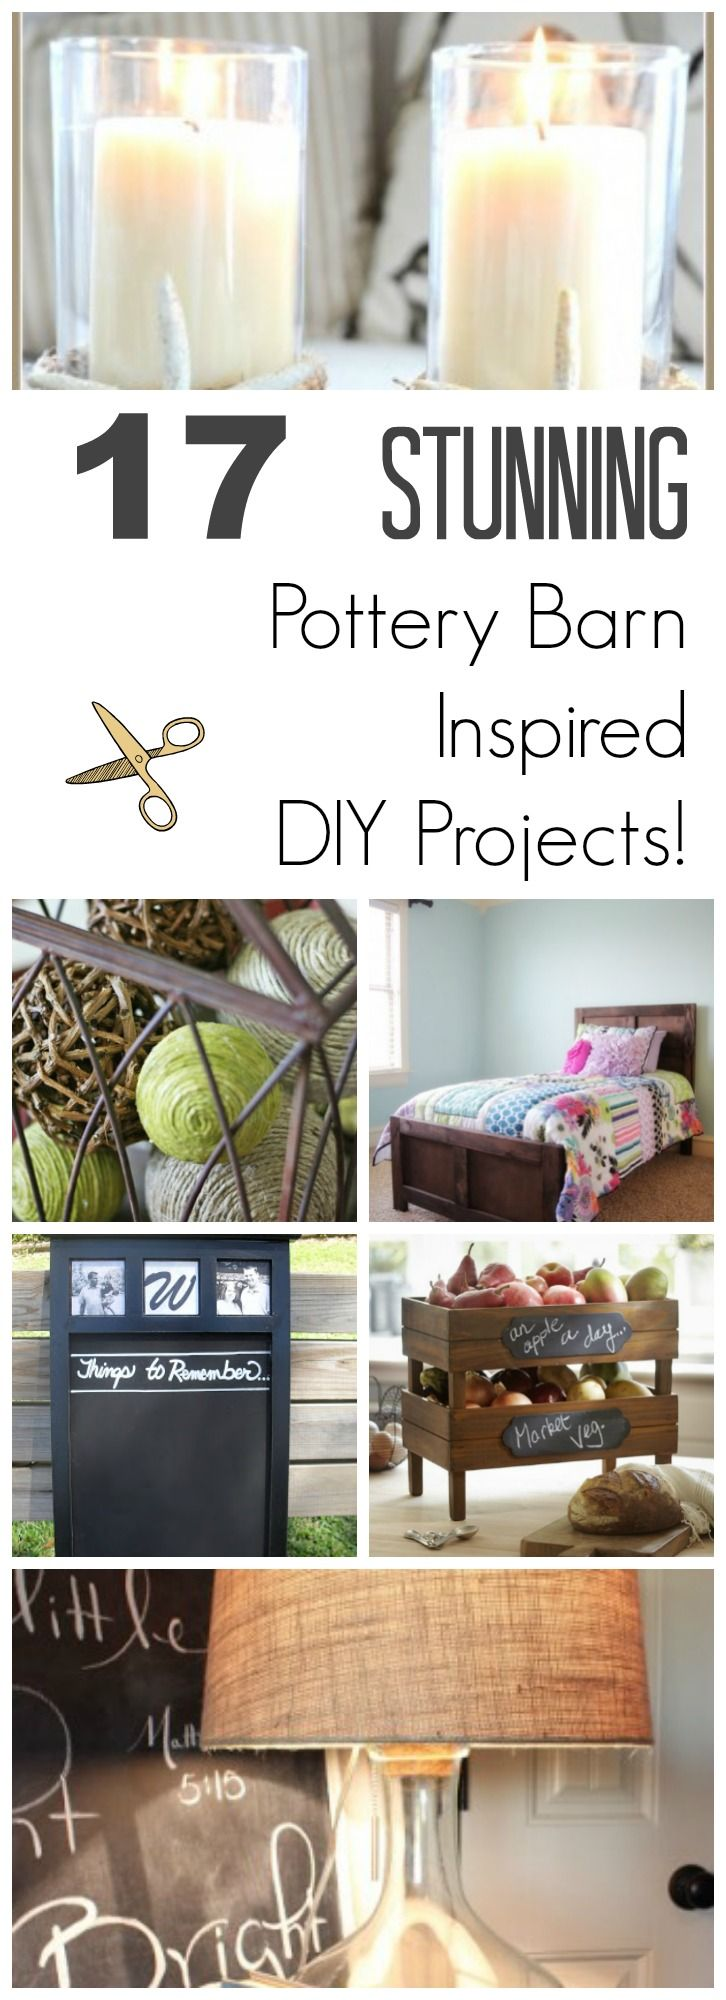 17 Stunning DIY Pottery Barn Decor Projects. Home Decor AccessoriesAccessories  OnlineDiy ...